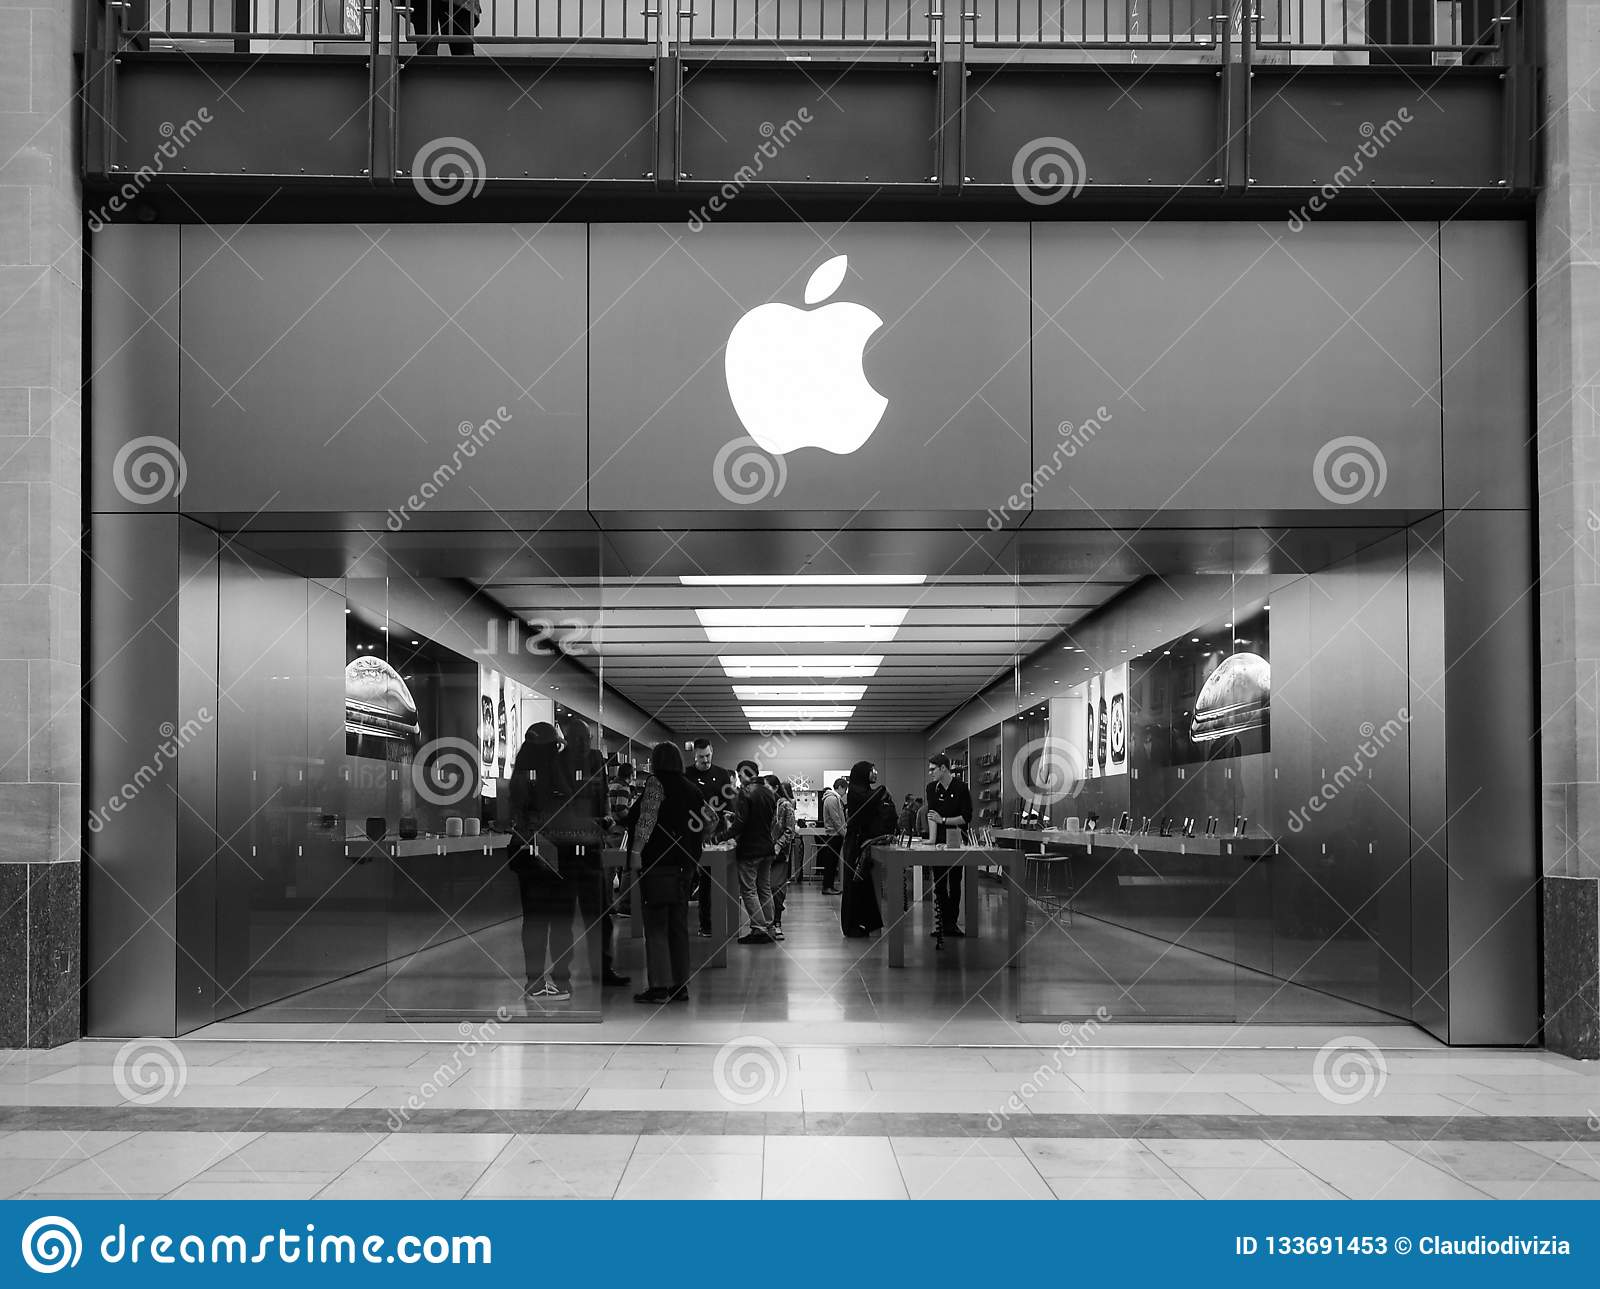 Apple Store At Grand Arcade Shopping Centre In Cambridge In Black